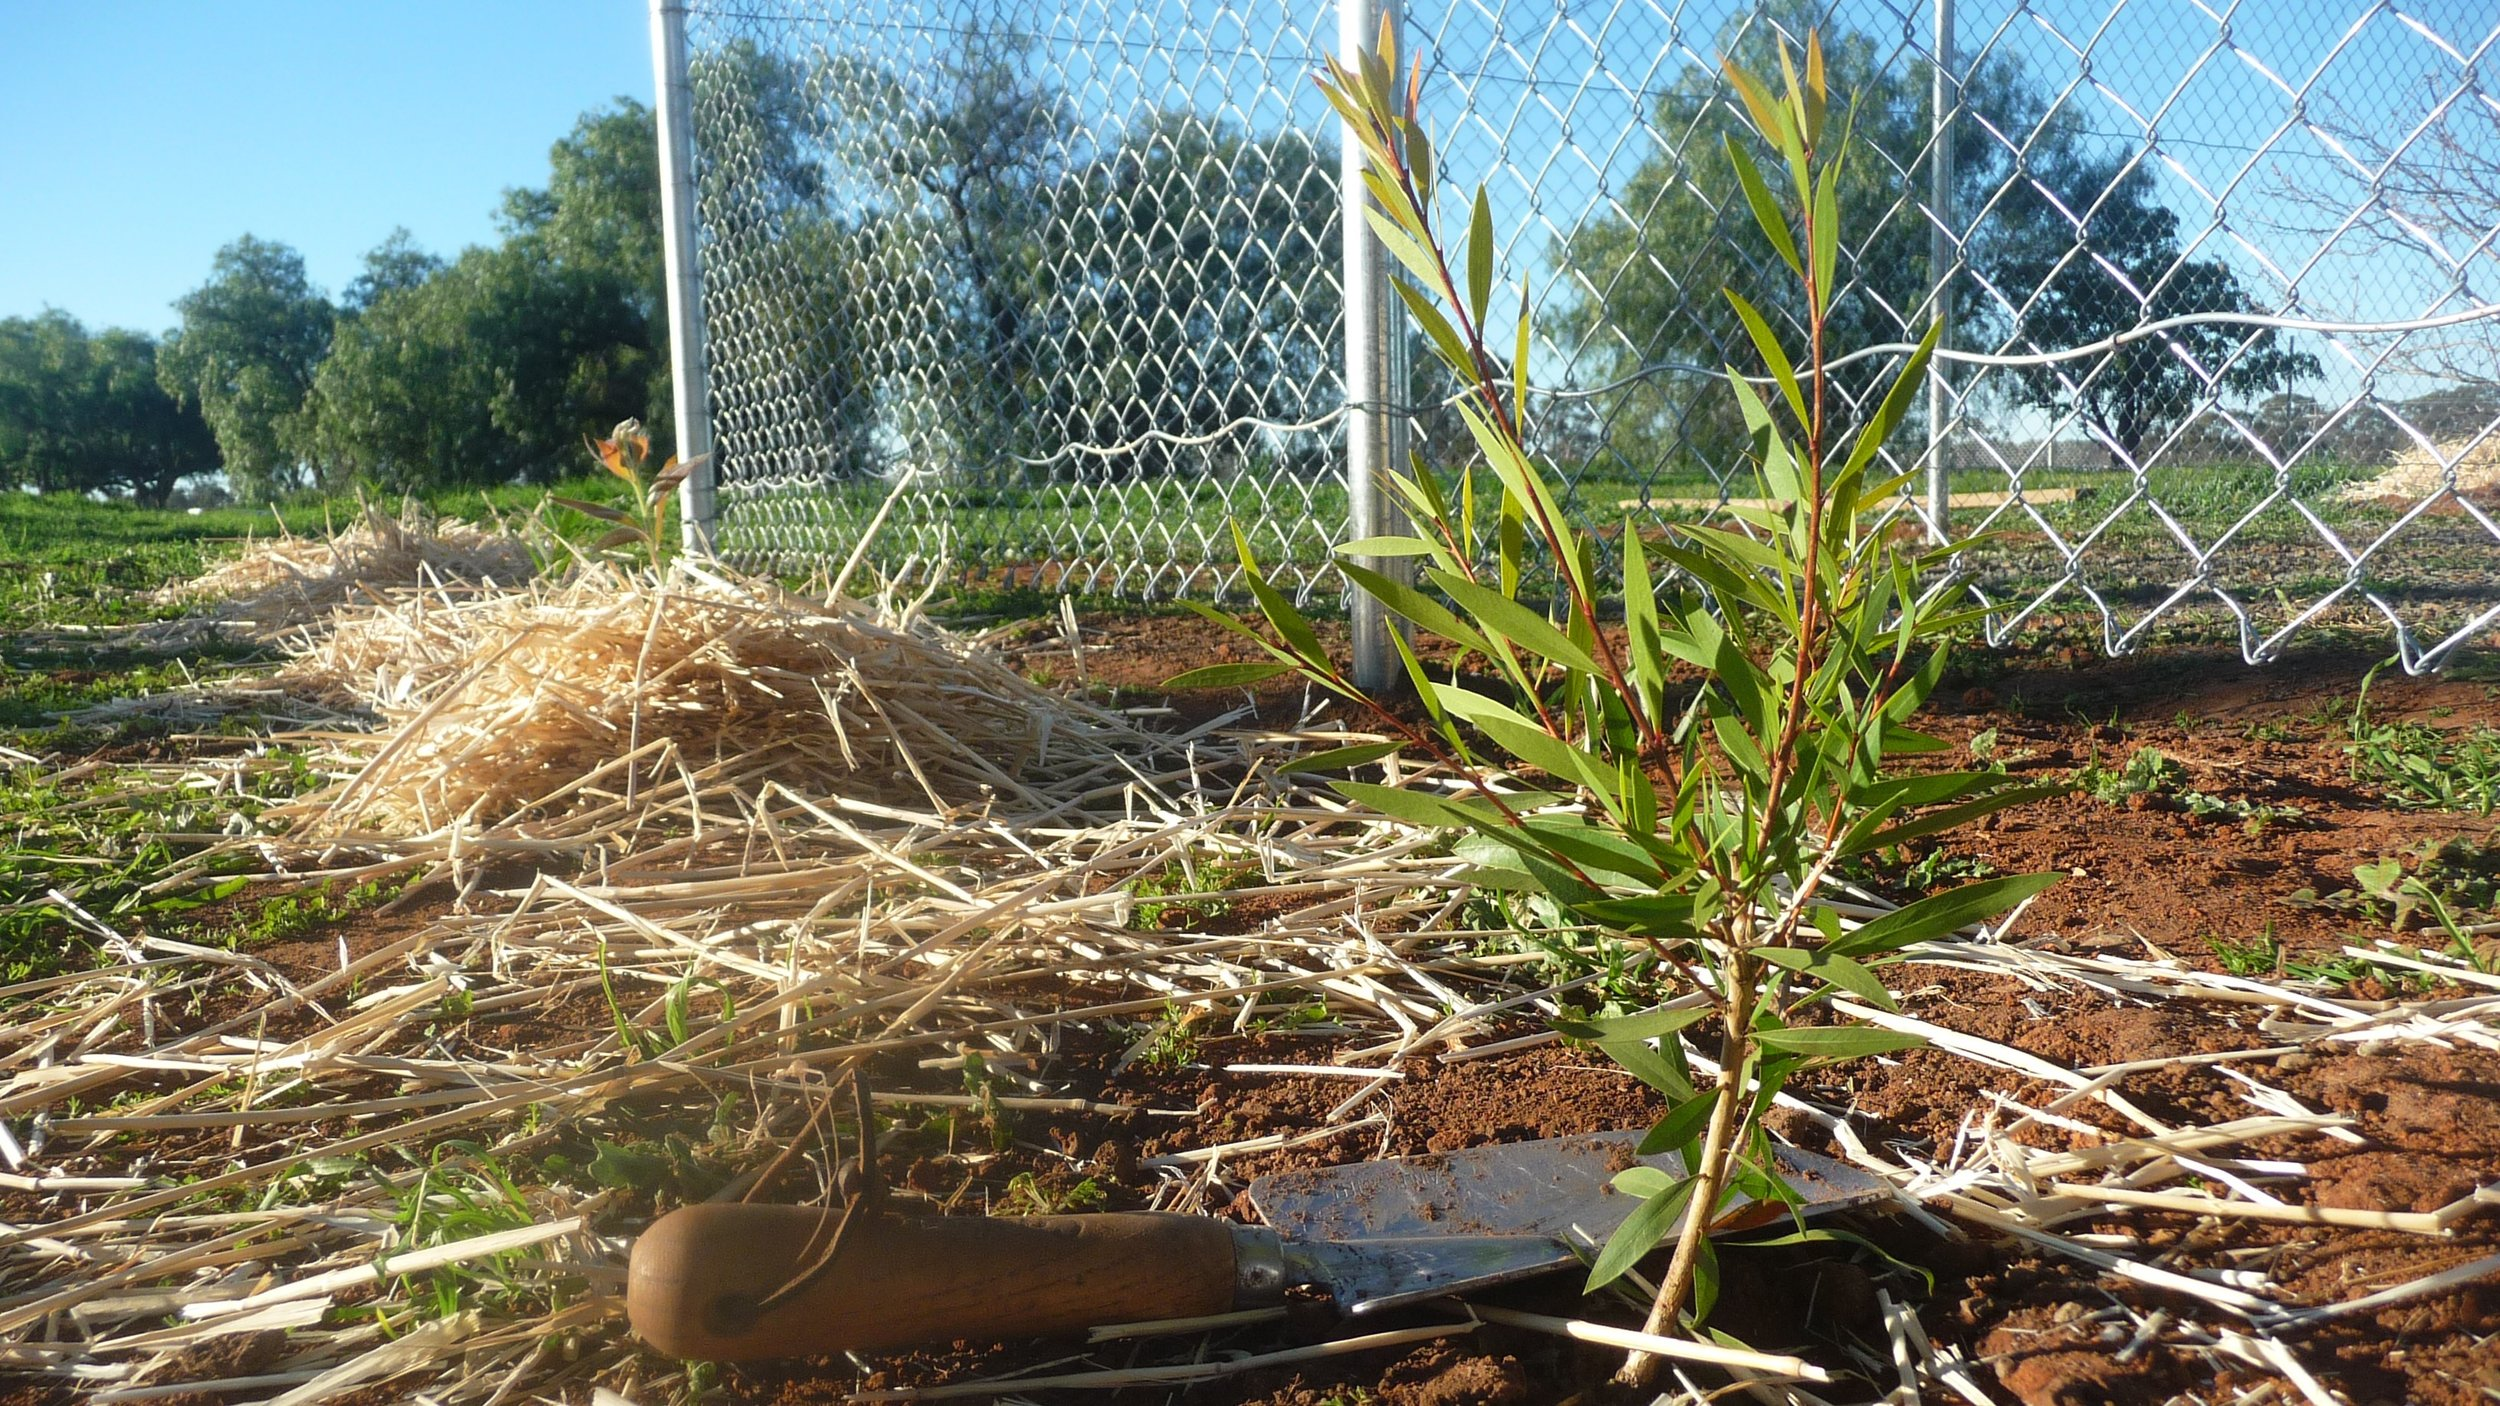 A seedling planted in front of the new fence